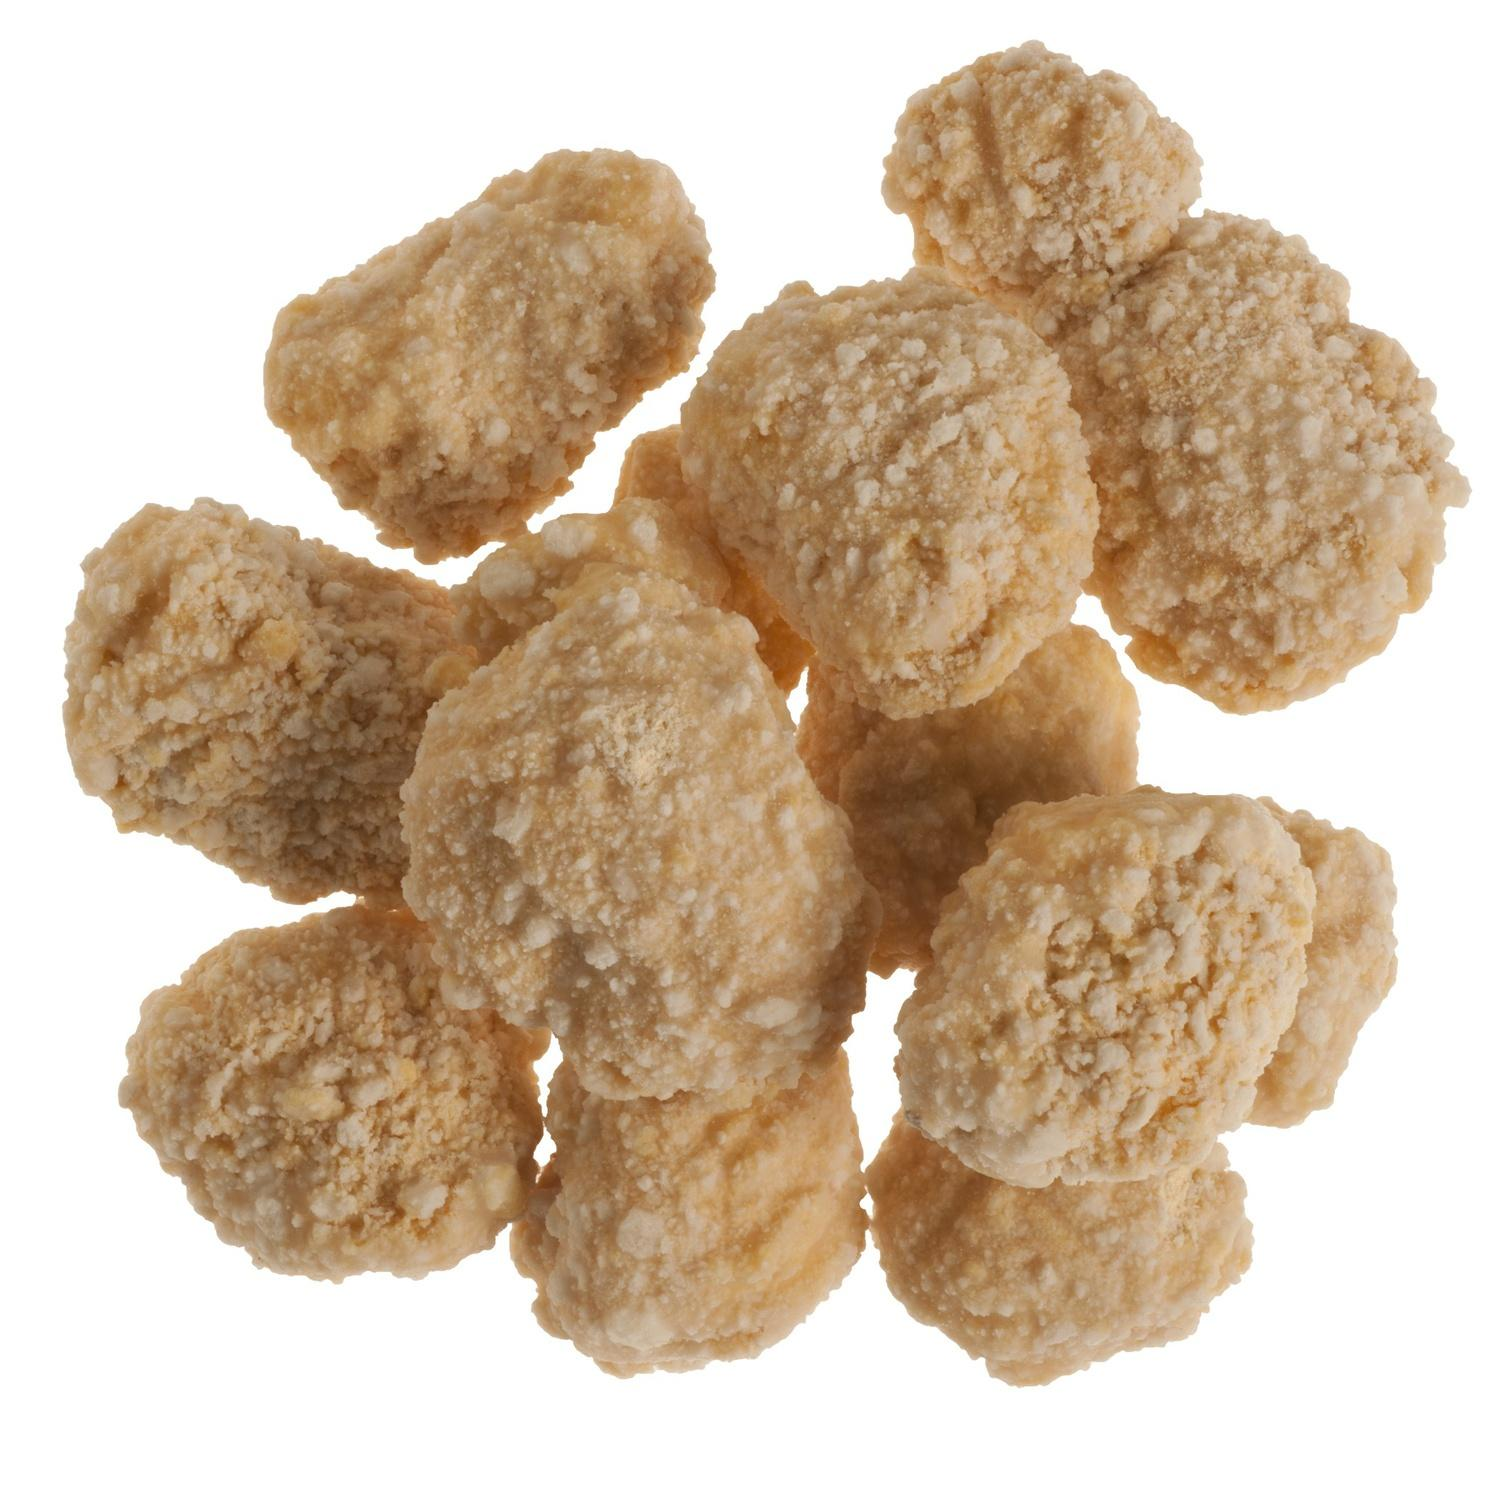 image of Cheddar Cheese Curds